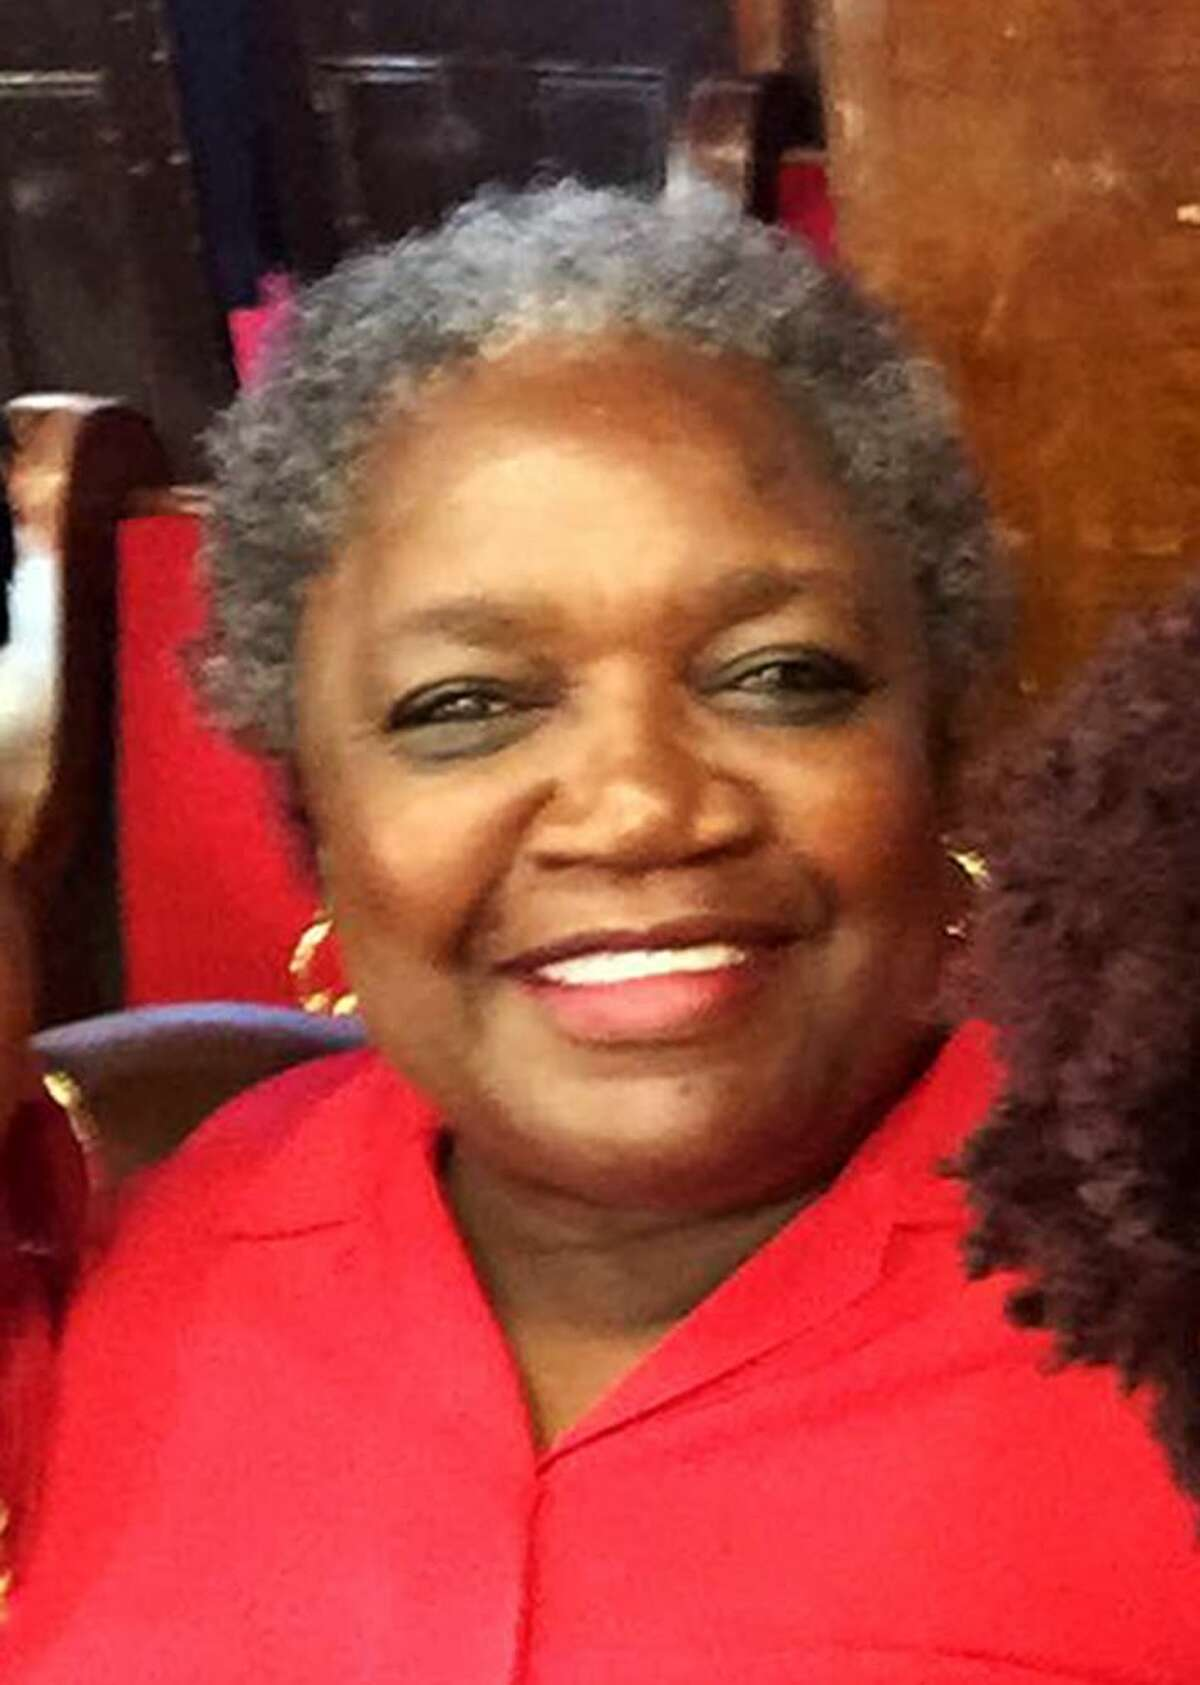 This Sunday, June 14, 2015, photo provided by Najee Washington shows her grandmother, Ethel Lance of Charleston, S.C. Lance, 70, was one of nine people killed Wednesday, June 17, 2015, when a white man opened fire during a prayer meeting inside a historic black church in Charleston.